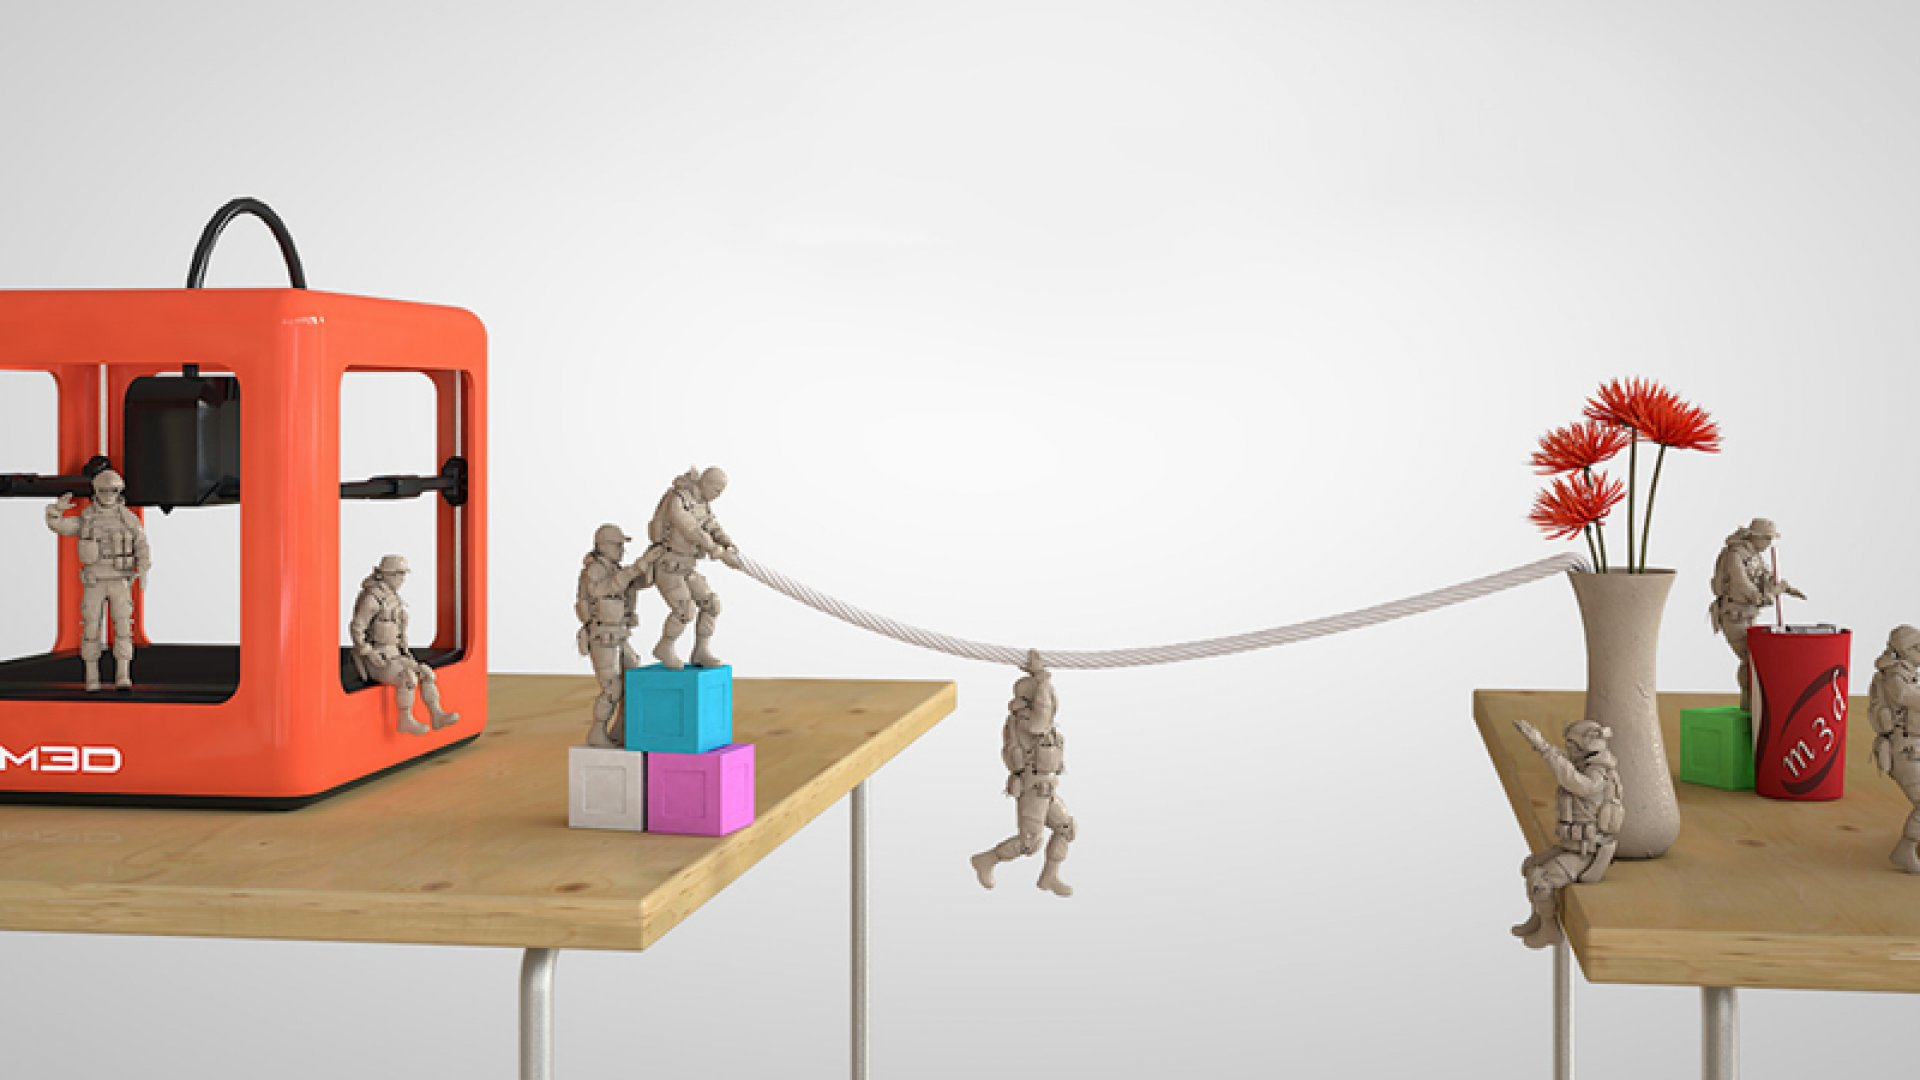 The Micro 3D printer from M3D.